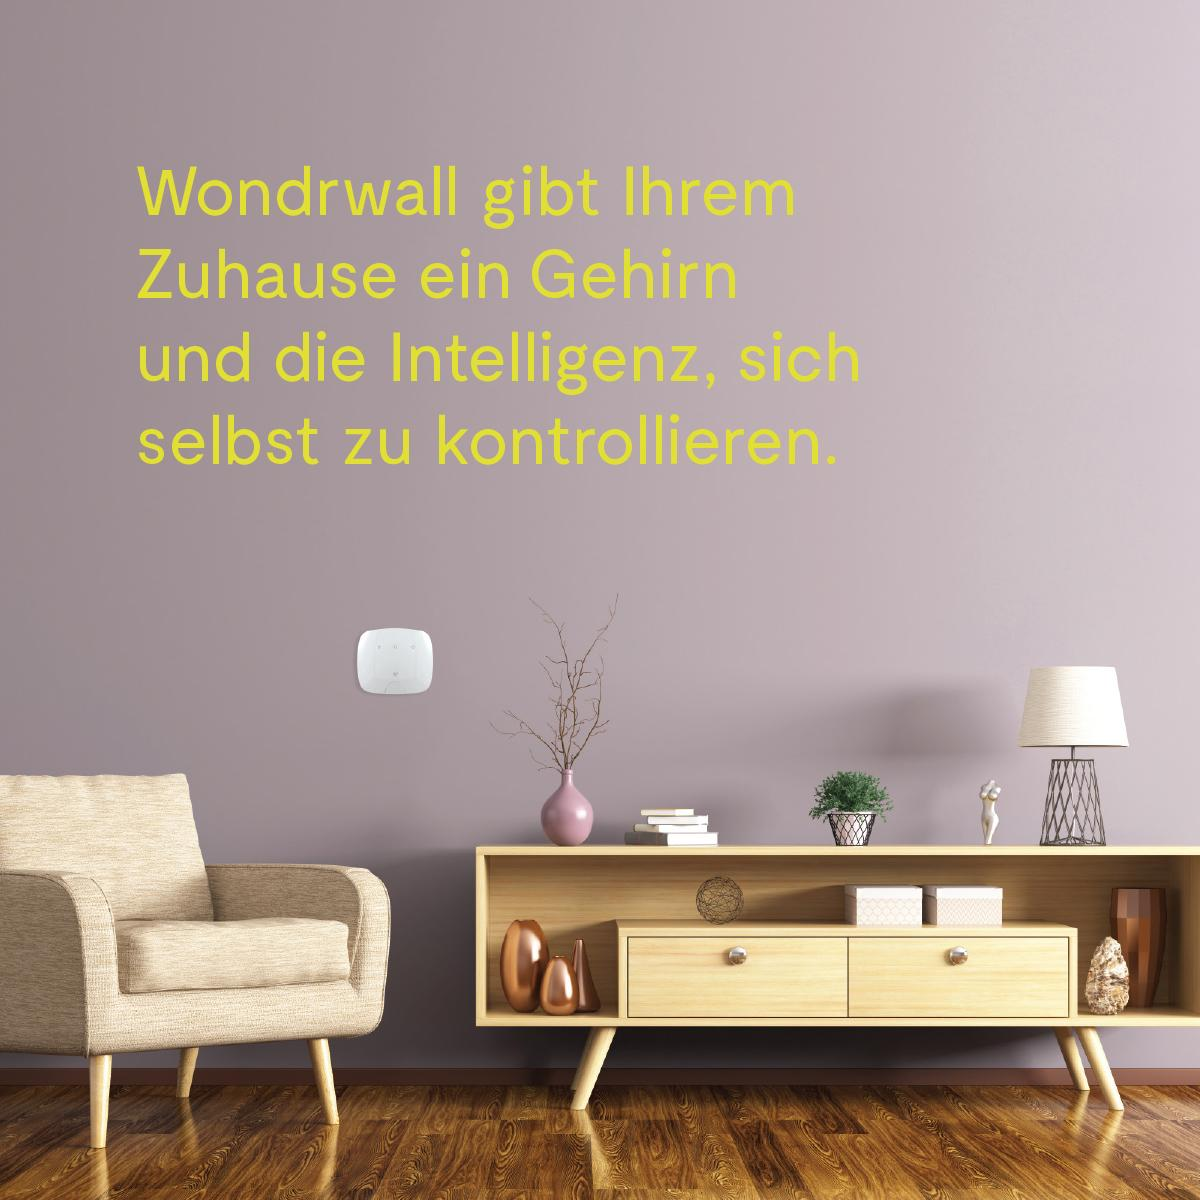 wondrwall wdr ss 001 de lichtschalter baumarkt. Black Bedroom Furniture Sets. Home Design Ideas